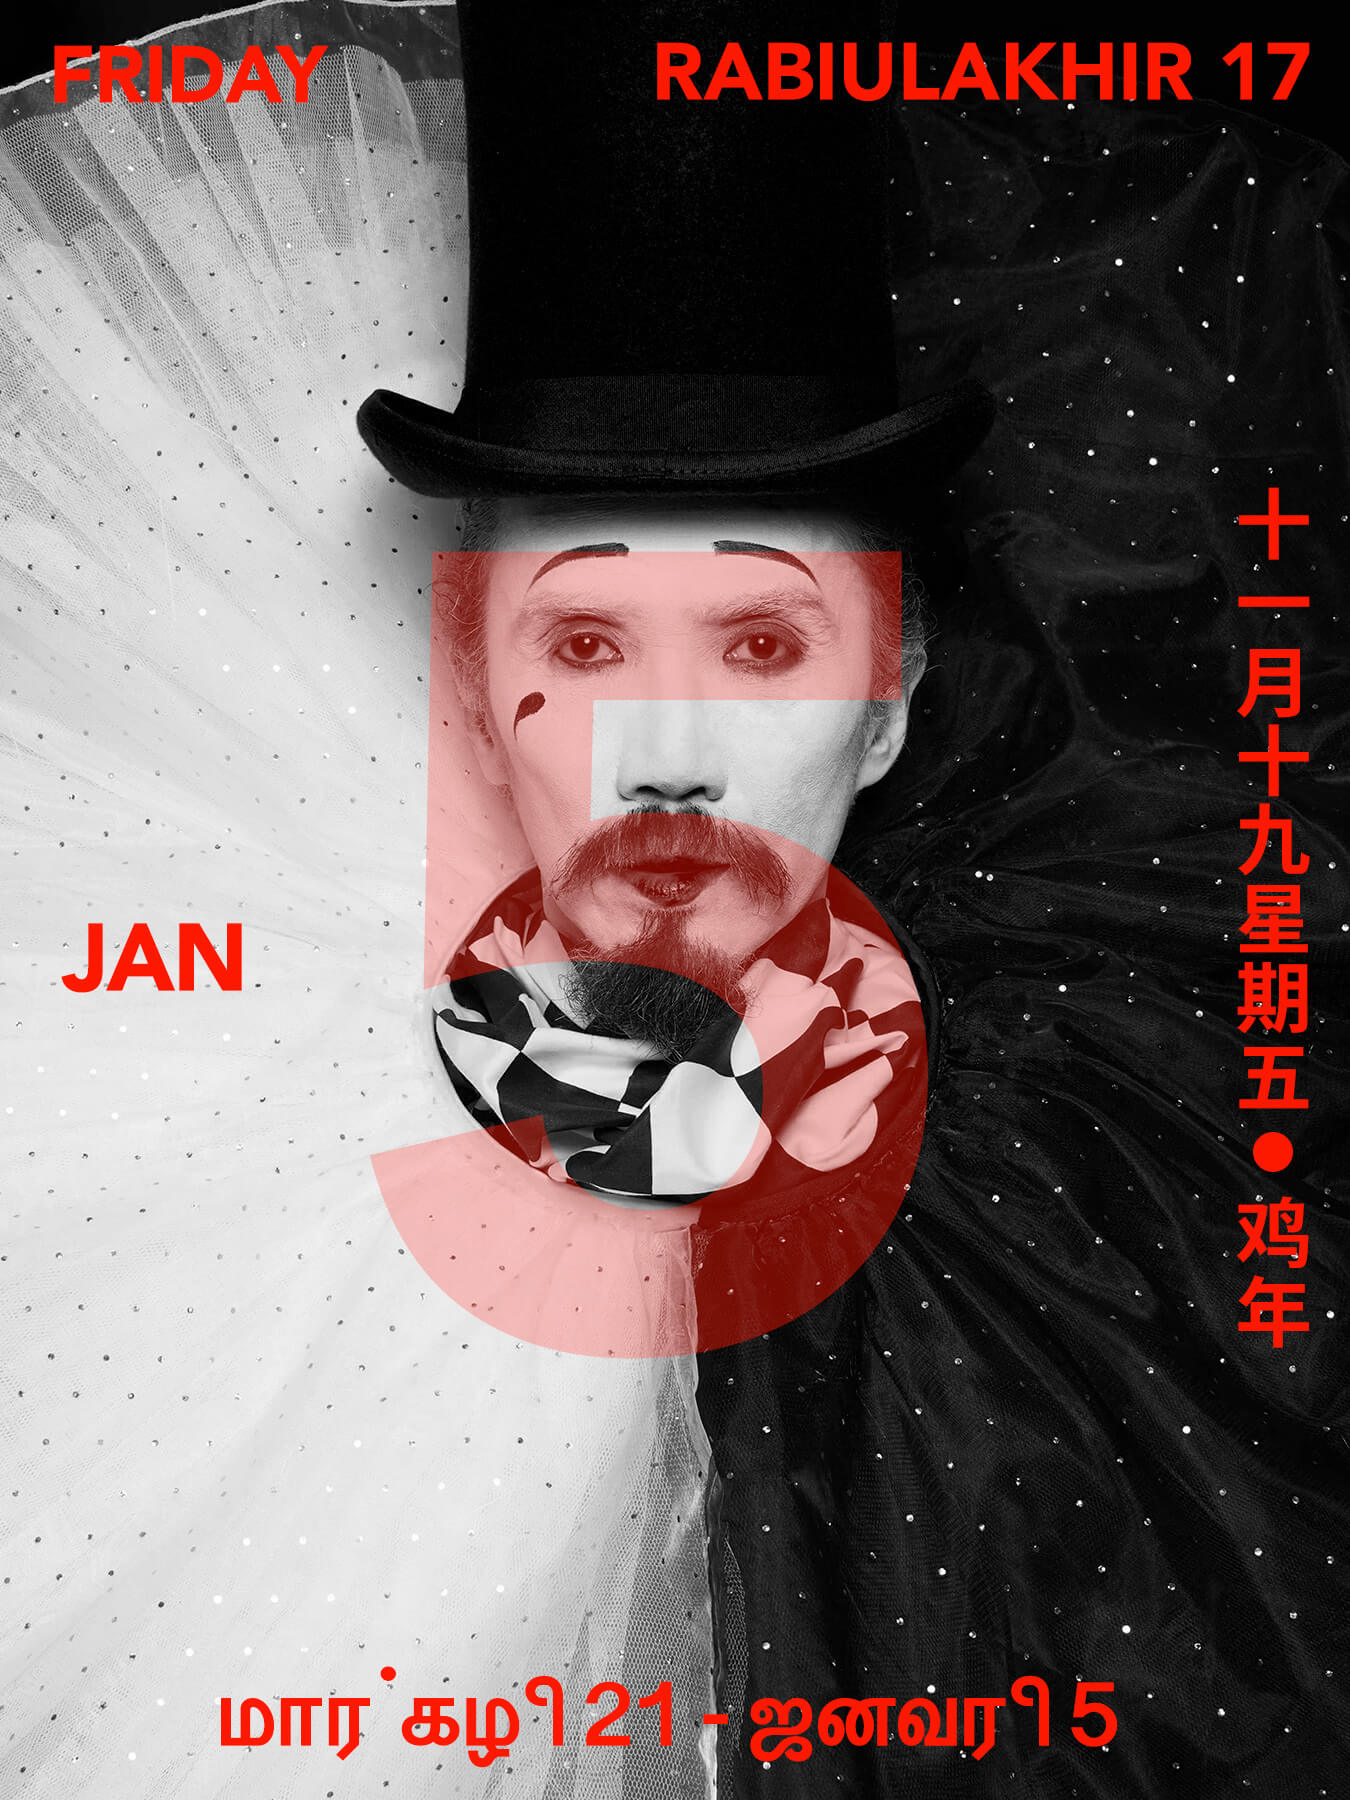 5 Jan 2018 Derong is photographed as Pierrot, the sad clown